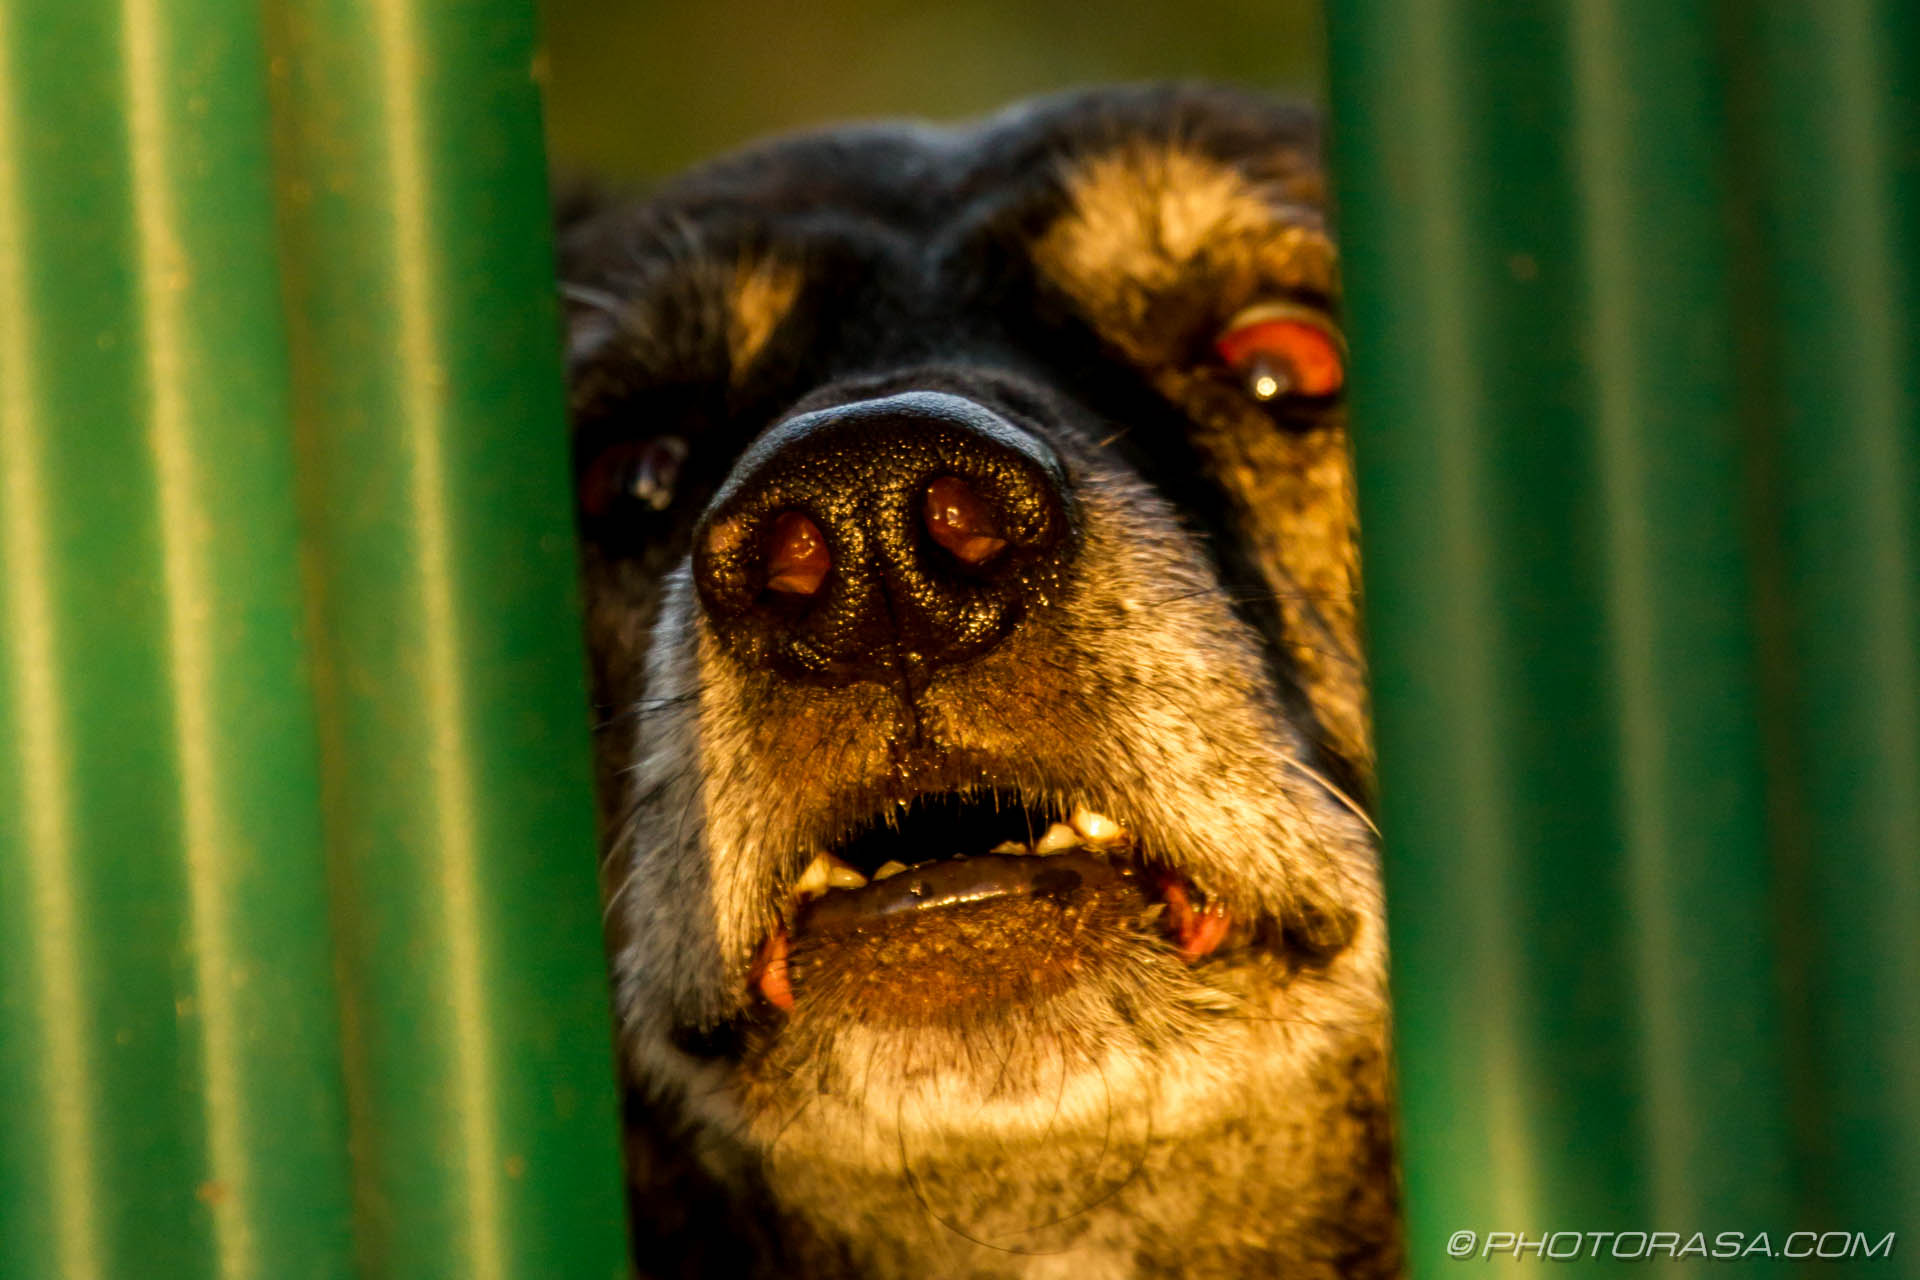 http://photorasa.com/old-guard-dog-fence/old-dogs-wet-nose/